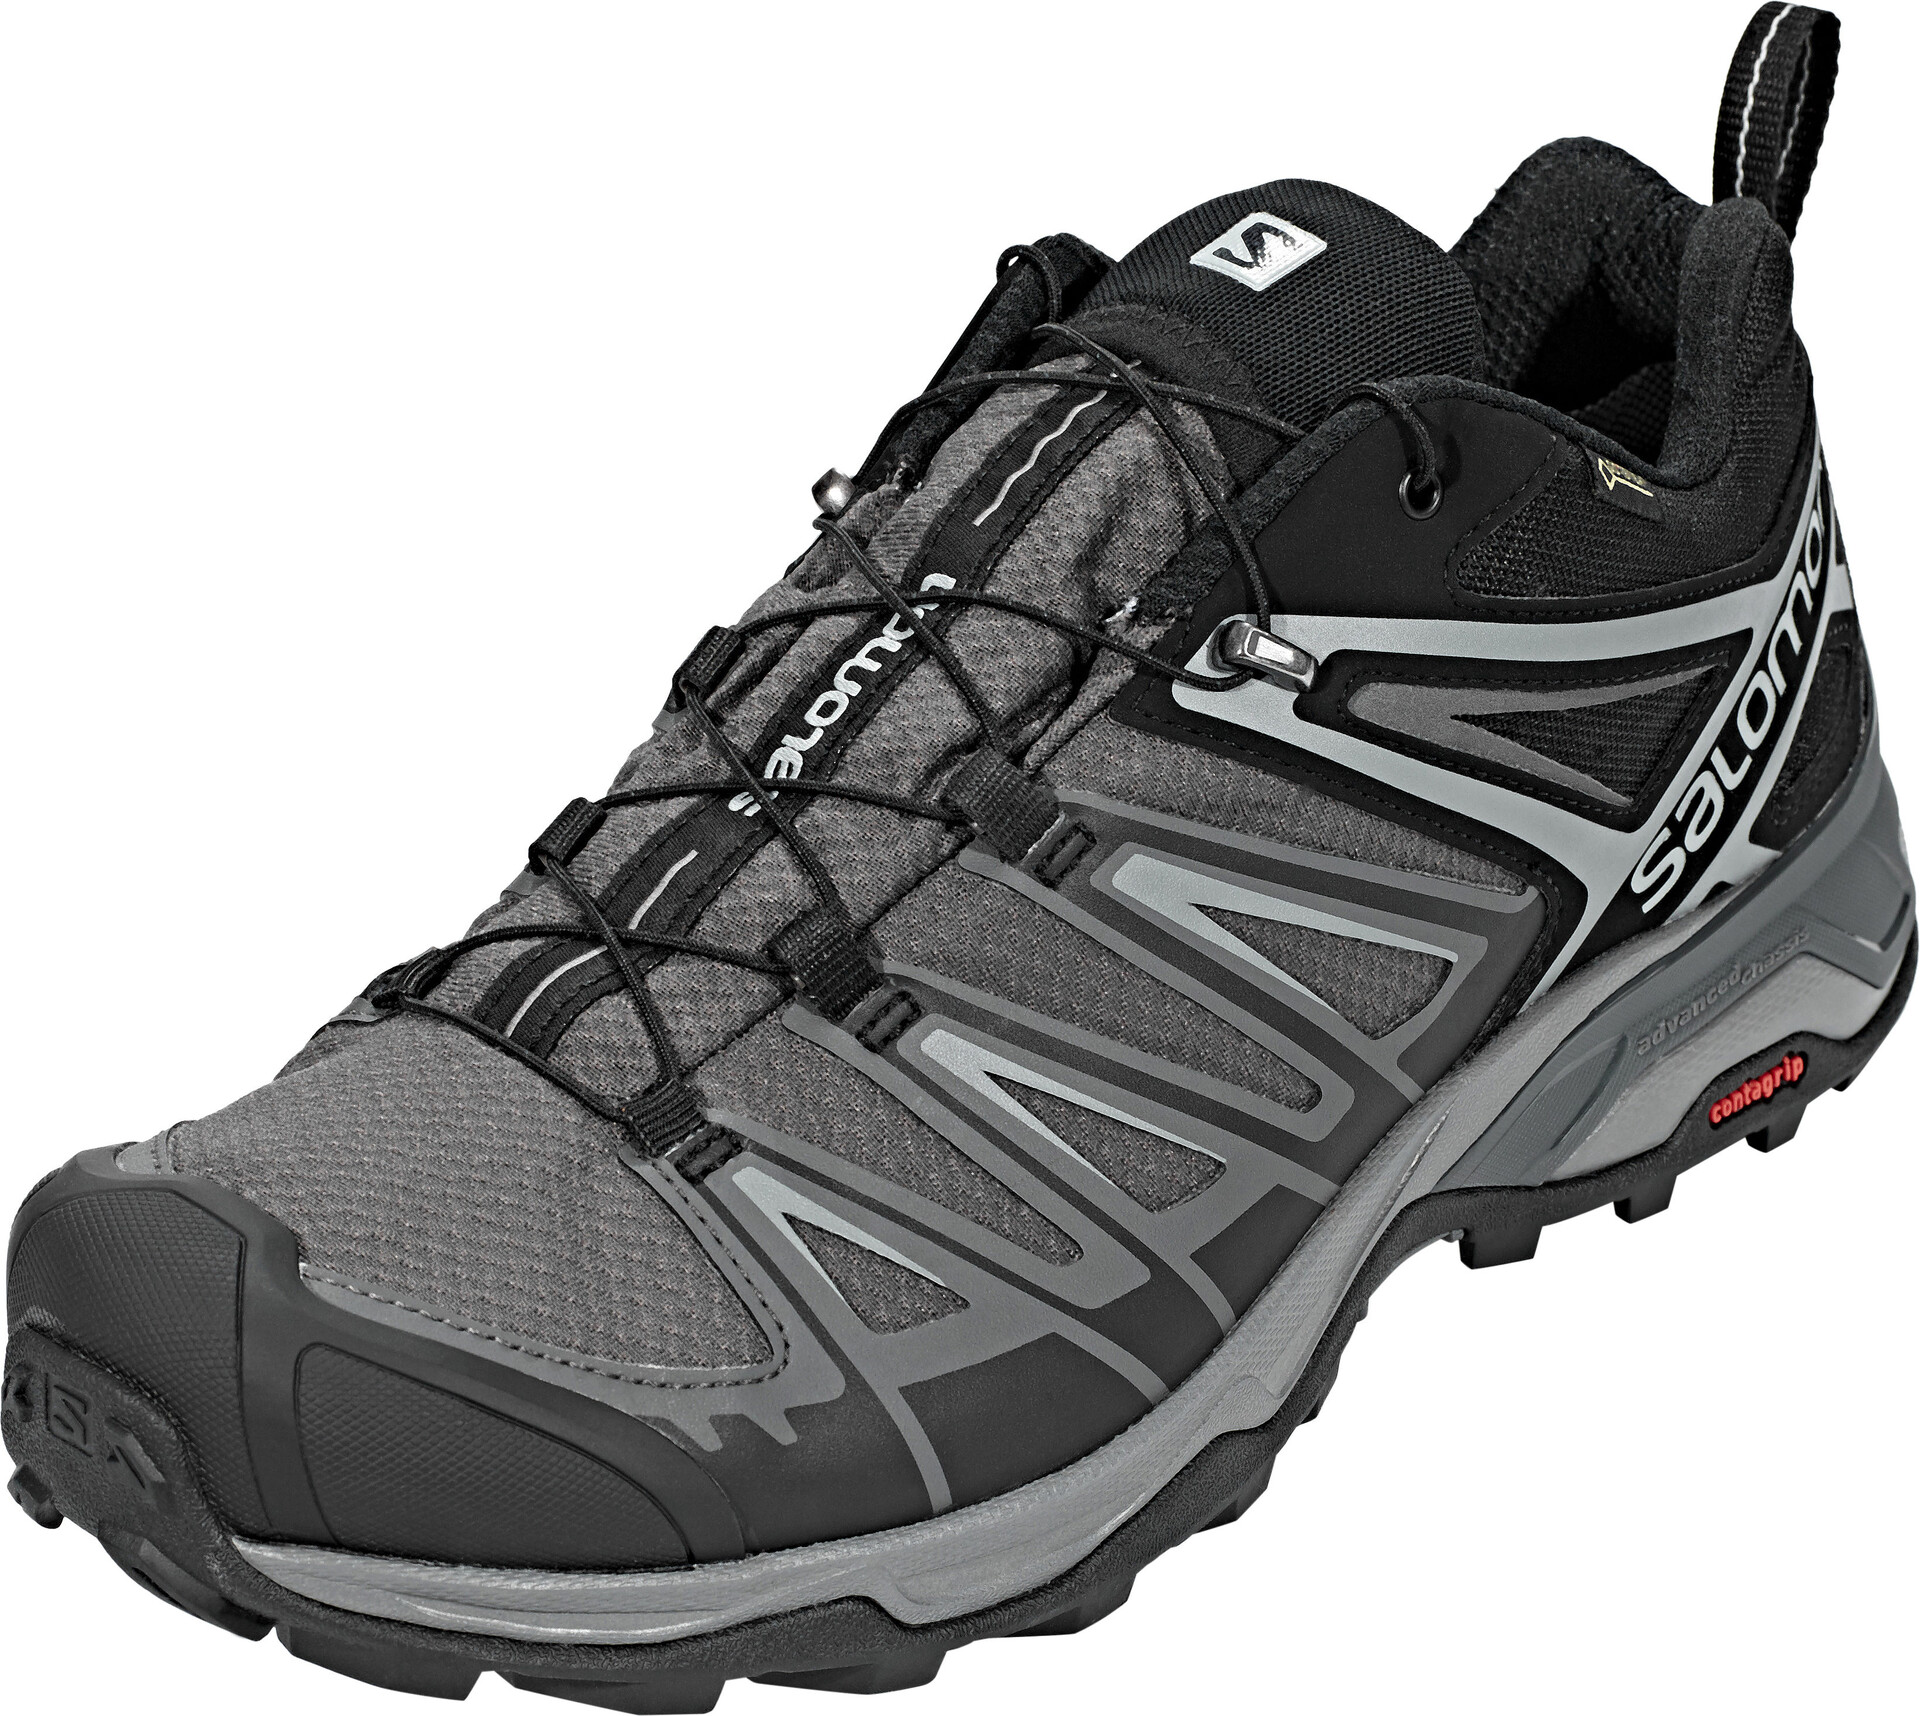 Salomon X Ultra 3 GTX Shoes Herren blackmagnetquiet shade